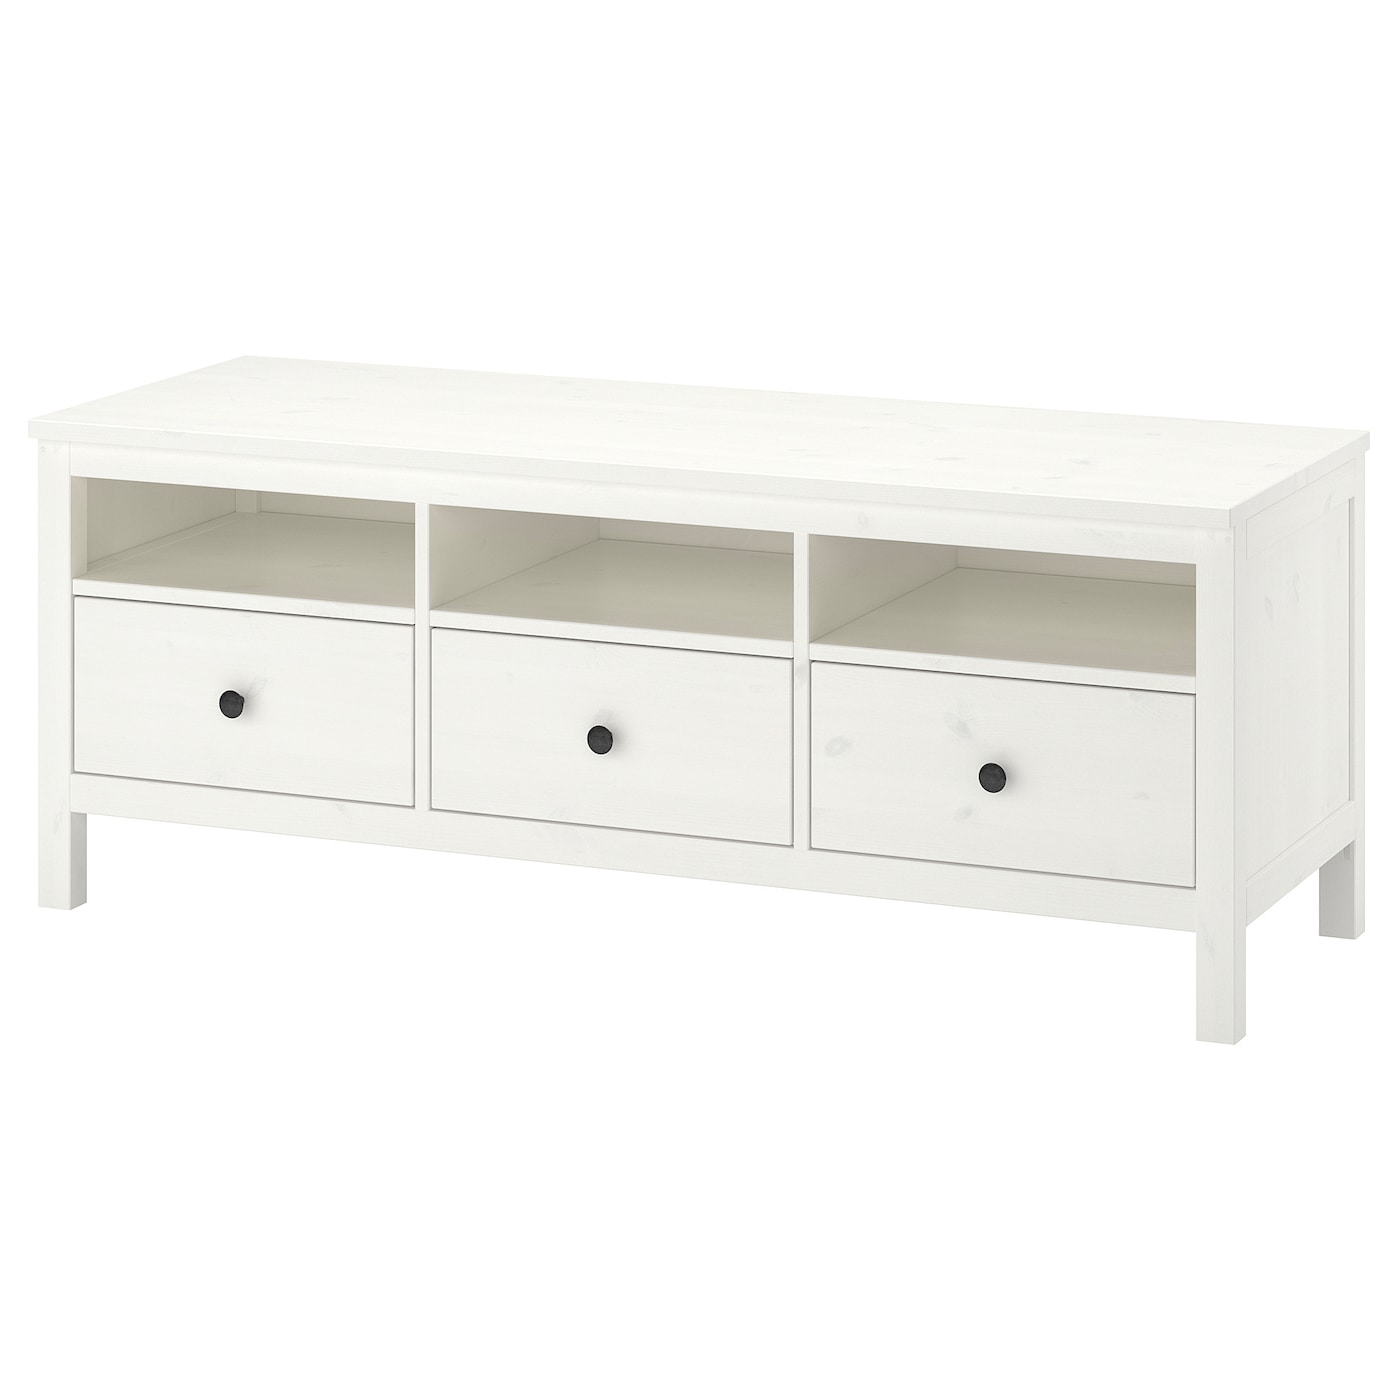 Hemnes Coffee Table White Stain 118x75 Cm: HEMNES TV Bench White Stain 148 X 47 X 57 Cm